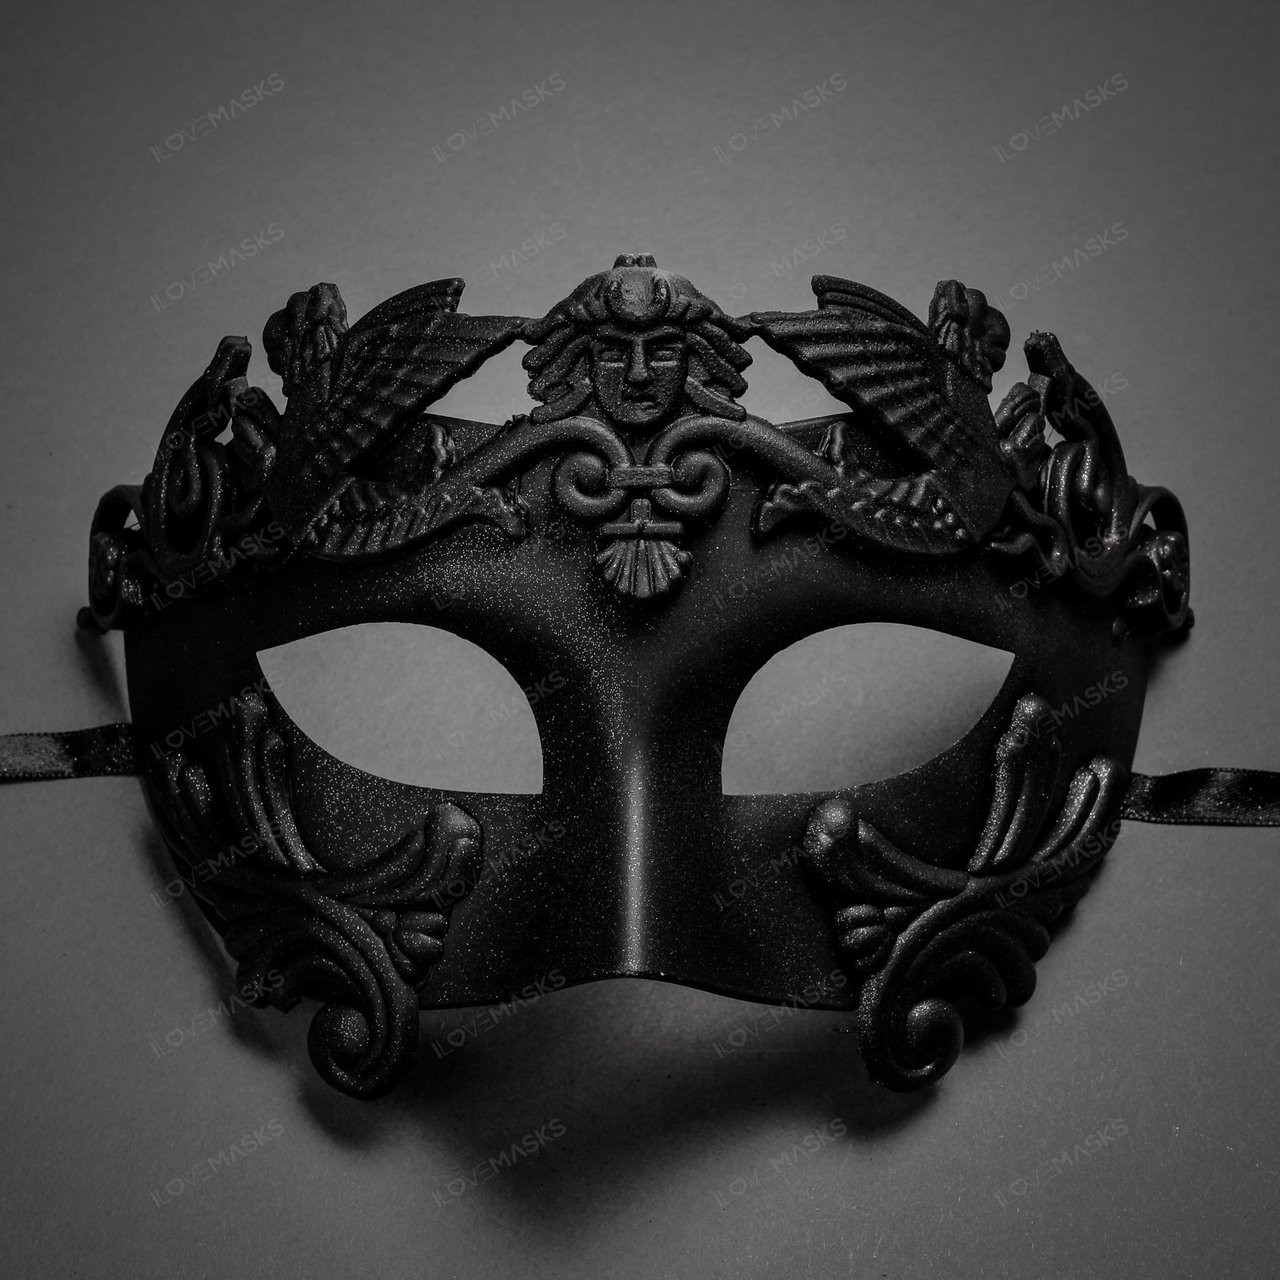 Roman Greek WARRIOR Emperor Venetian Masquerade Ball Party Mask Men Black Silver